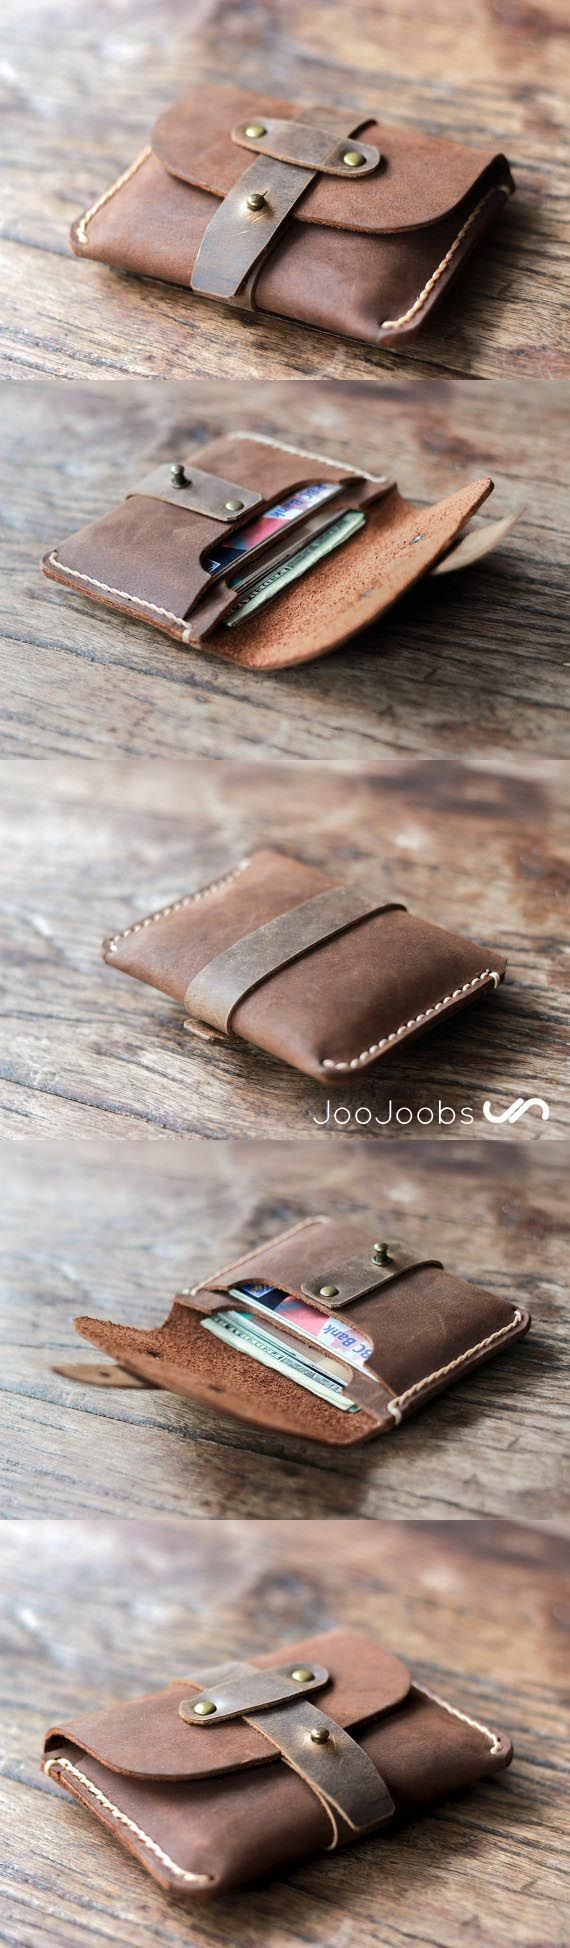 Coin Purse Wallet – Treasure Chest Credit Card Wallet – The Wallet of the Year – JooJoobs Original Design – Leather Wallets [011]